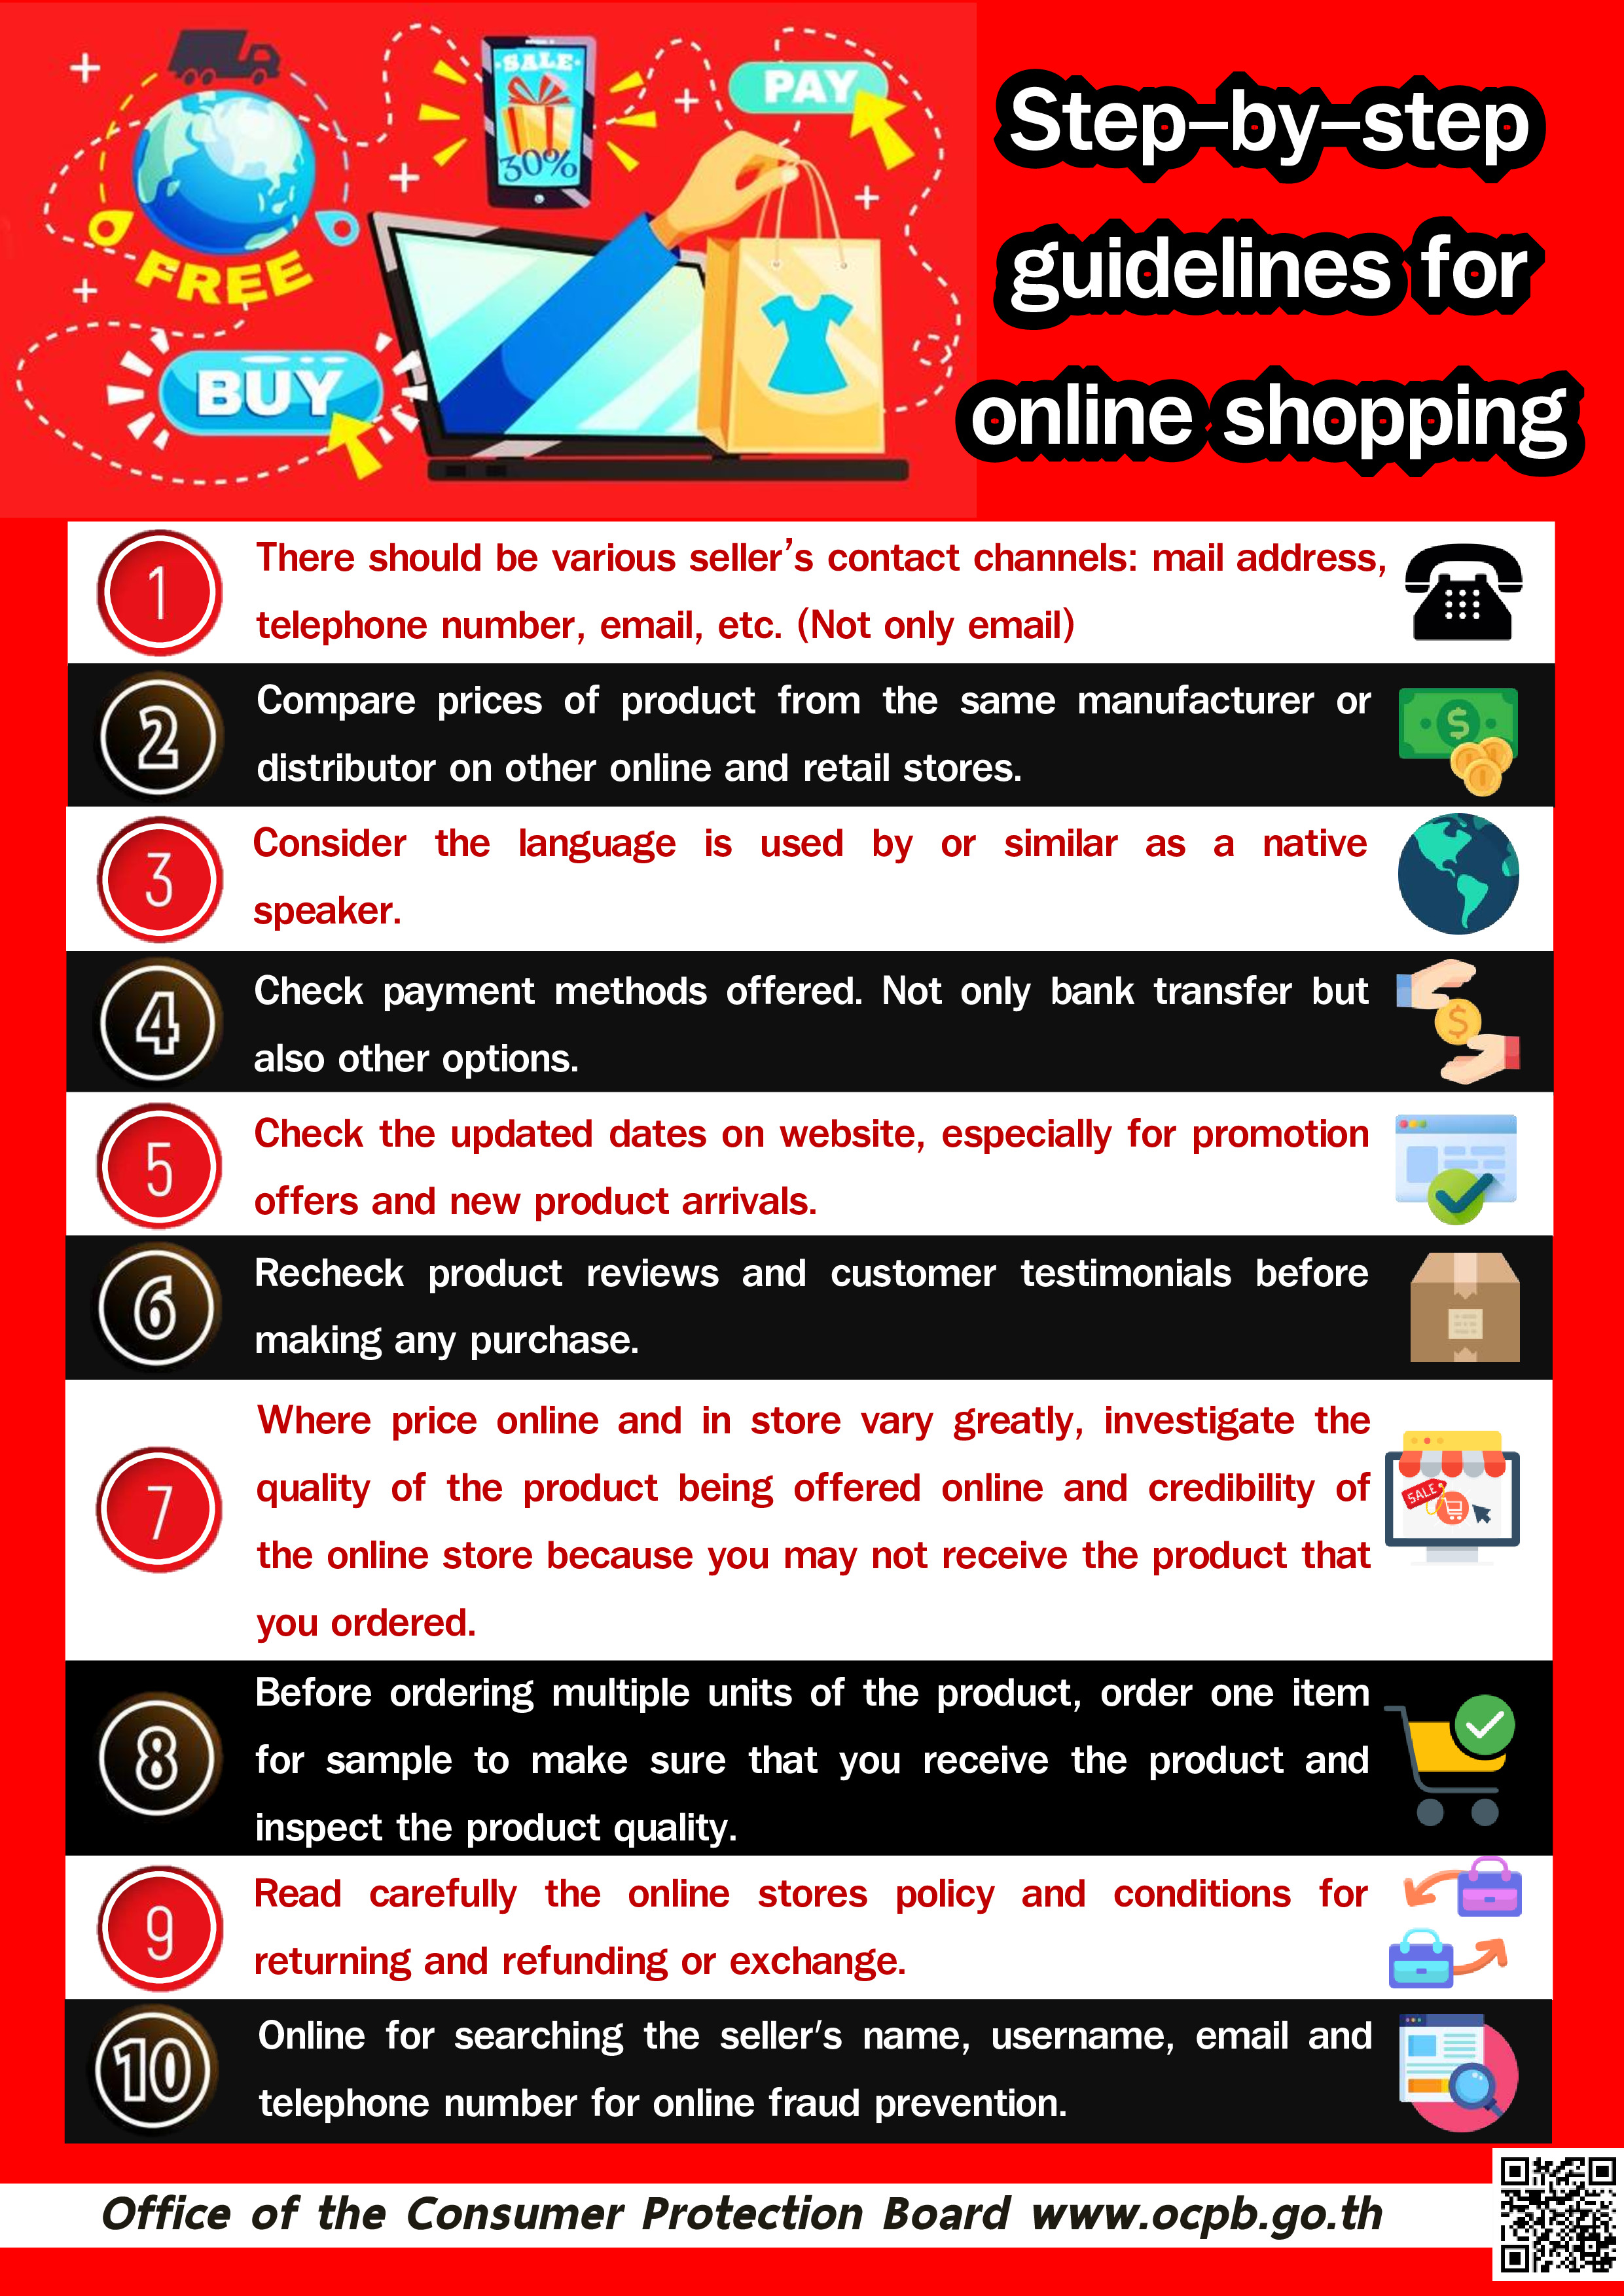 Step-by-step guidelines for online shopping